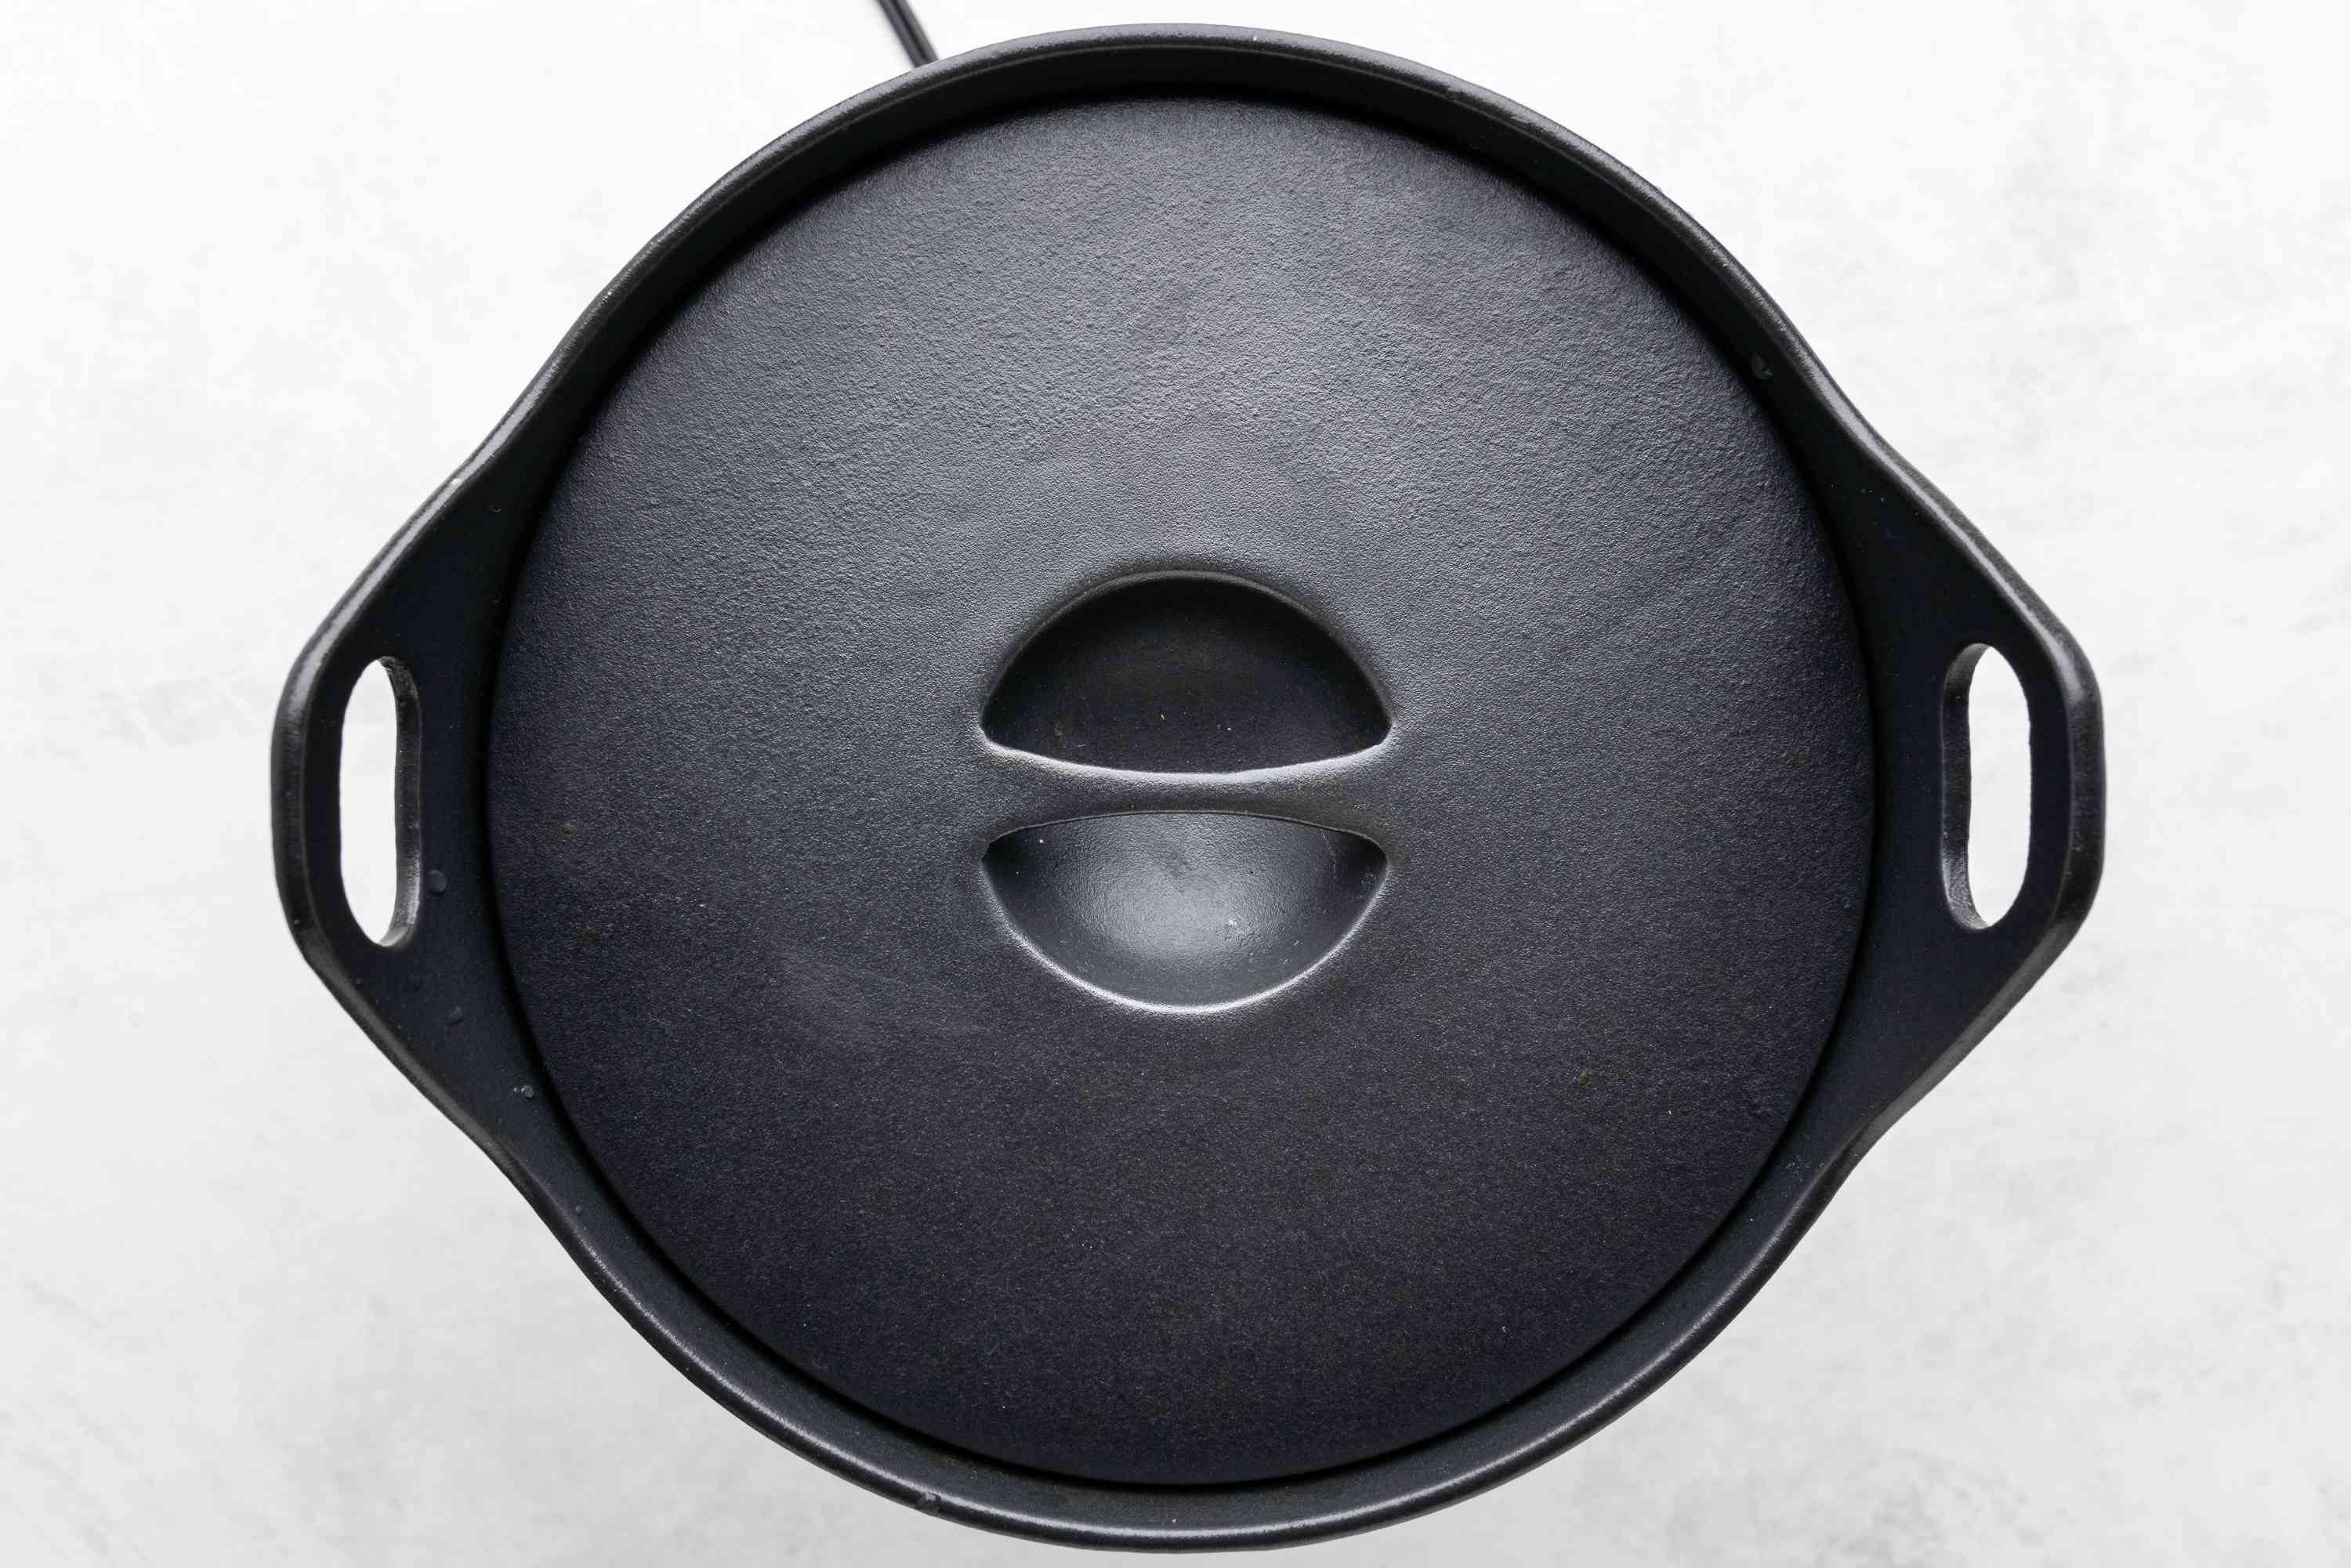 broth cooking in a covered pot